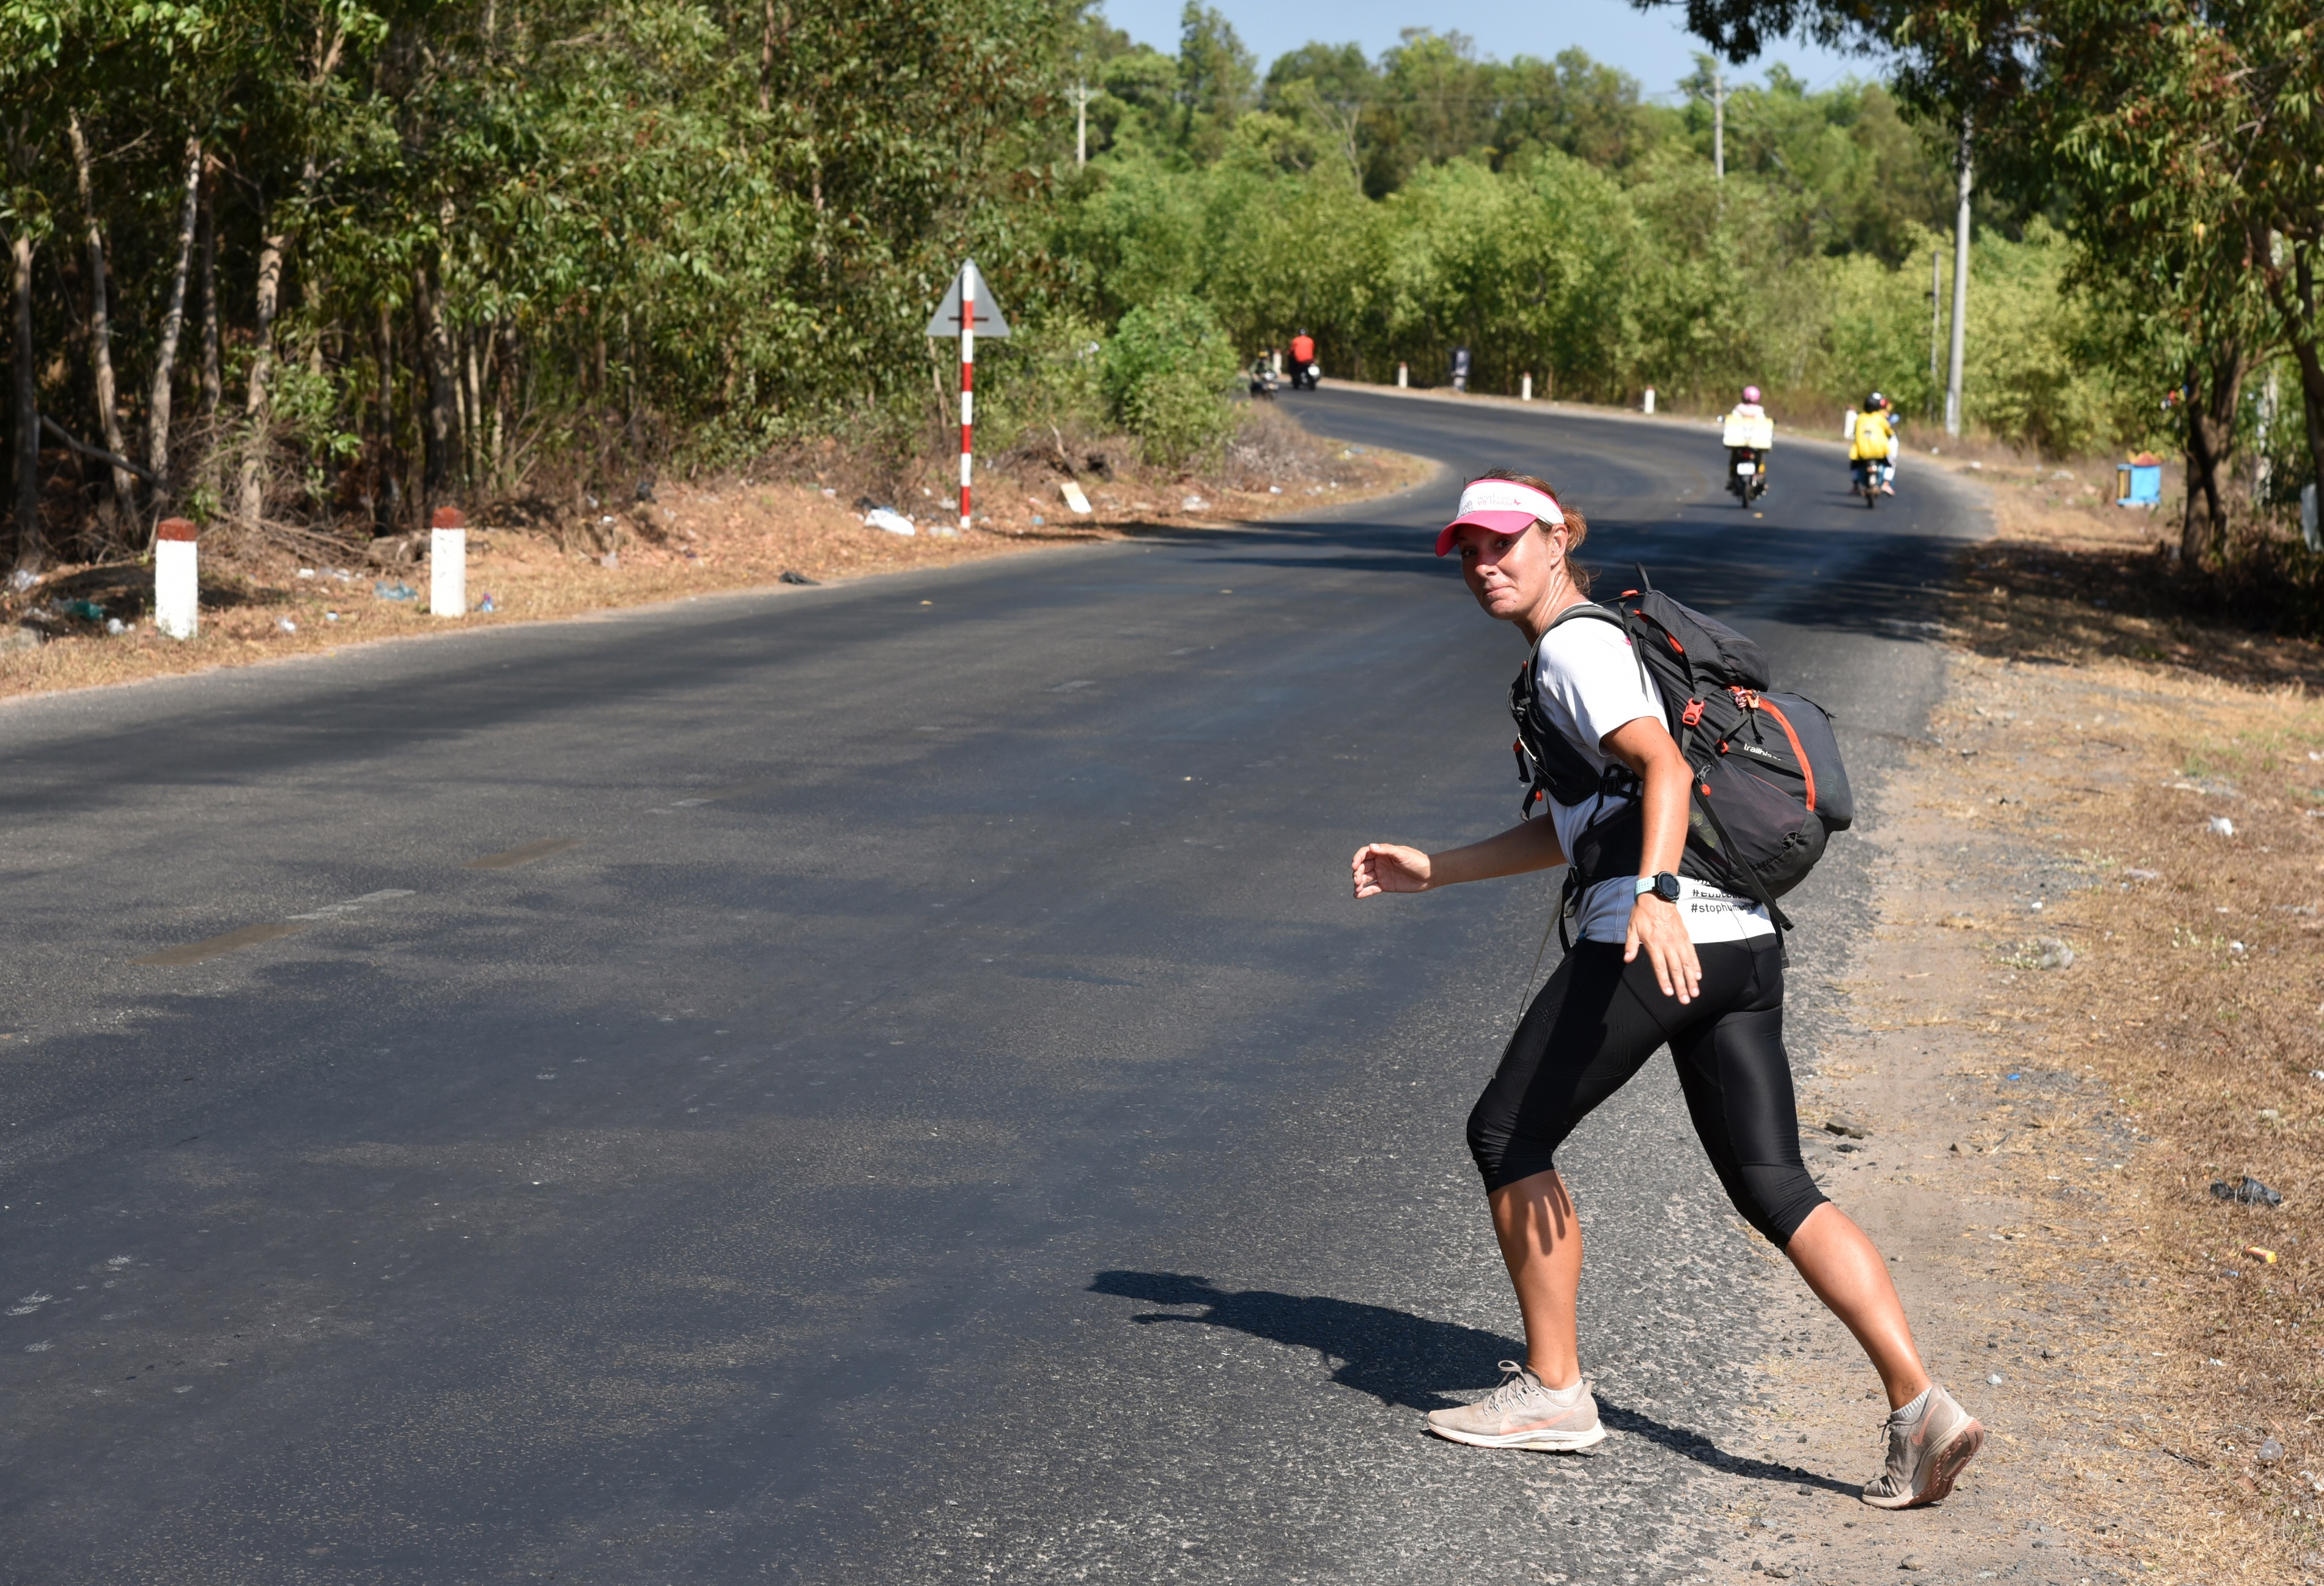 Naomi Skinner is seen on the road in this supplied photo.